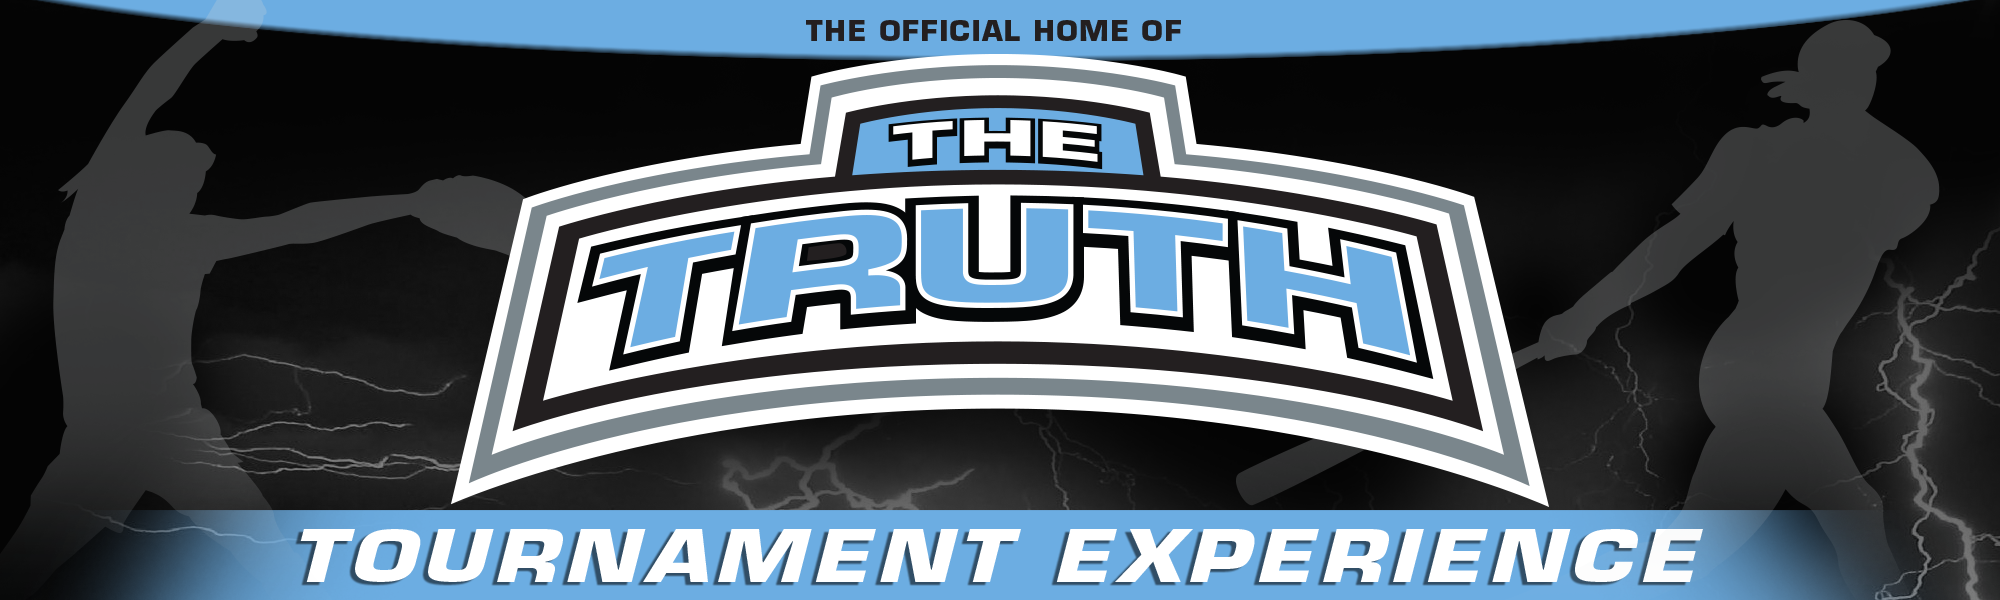 Thetruth_header_rev112915_a